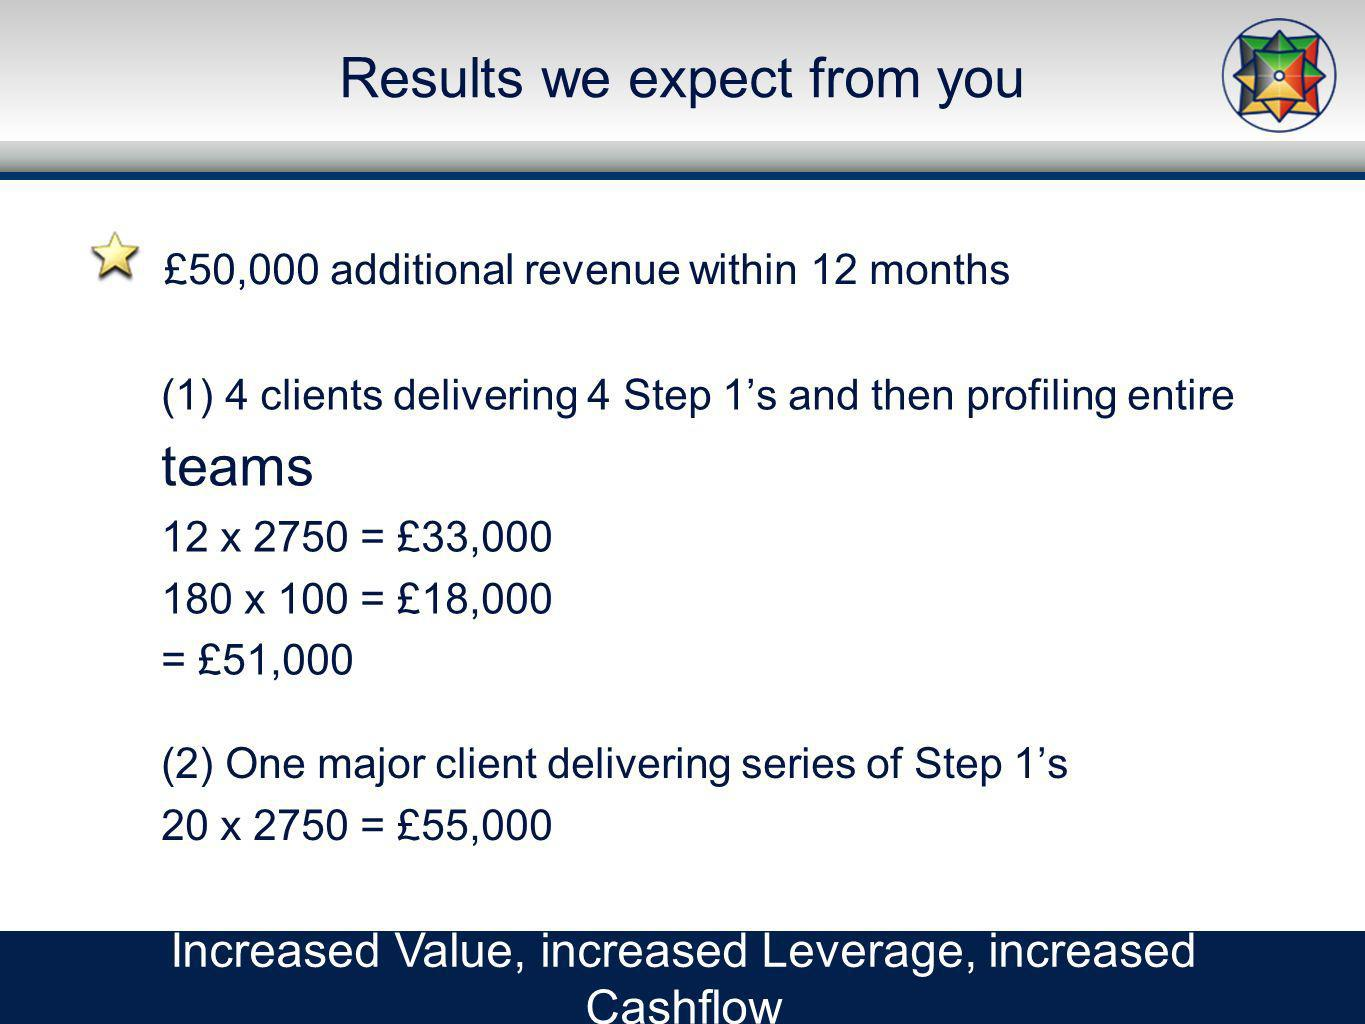 Results we expect from you Increased Value, increased Leverage, increased Cashflow (1) 4 clients delivering 4 Step 1s and then profiling entire teams